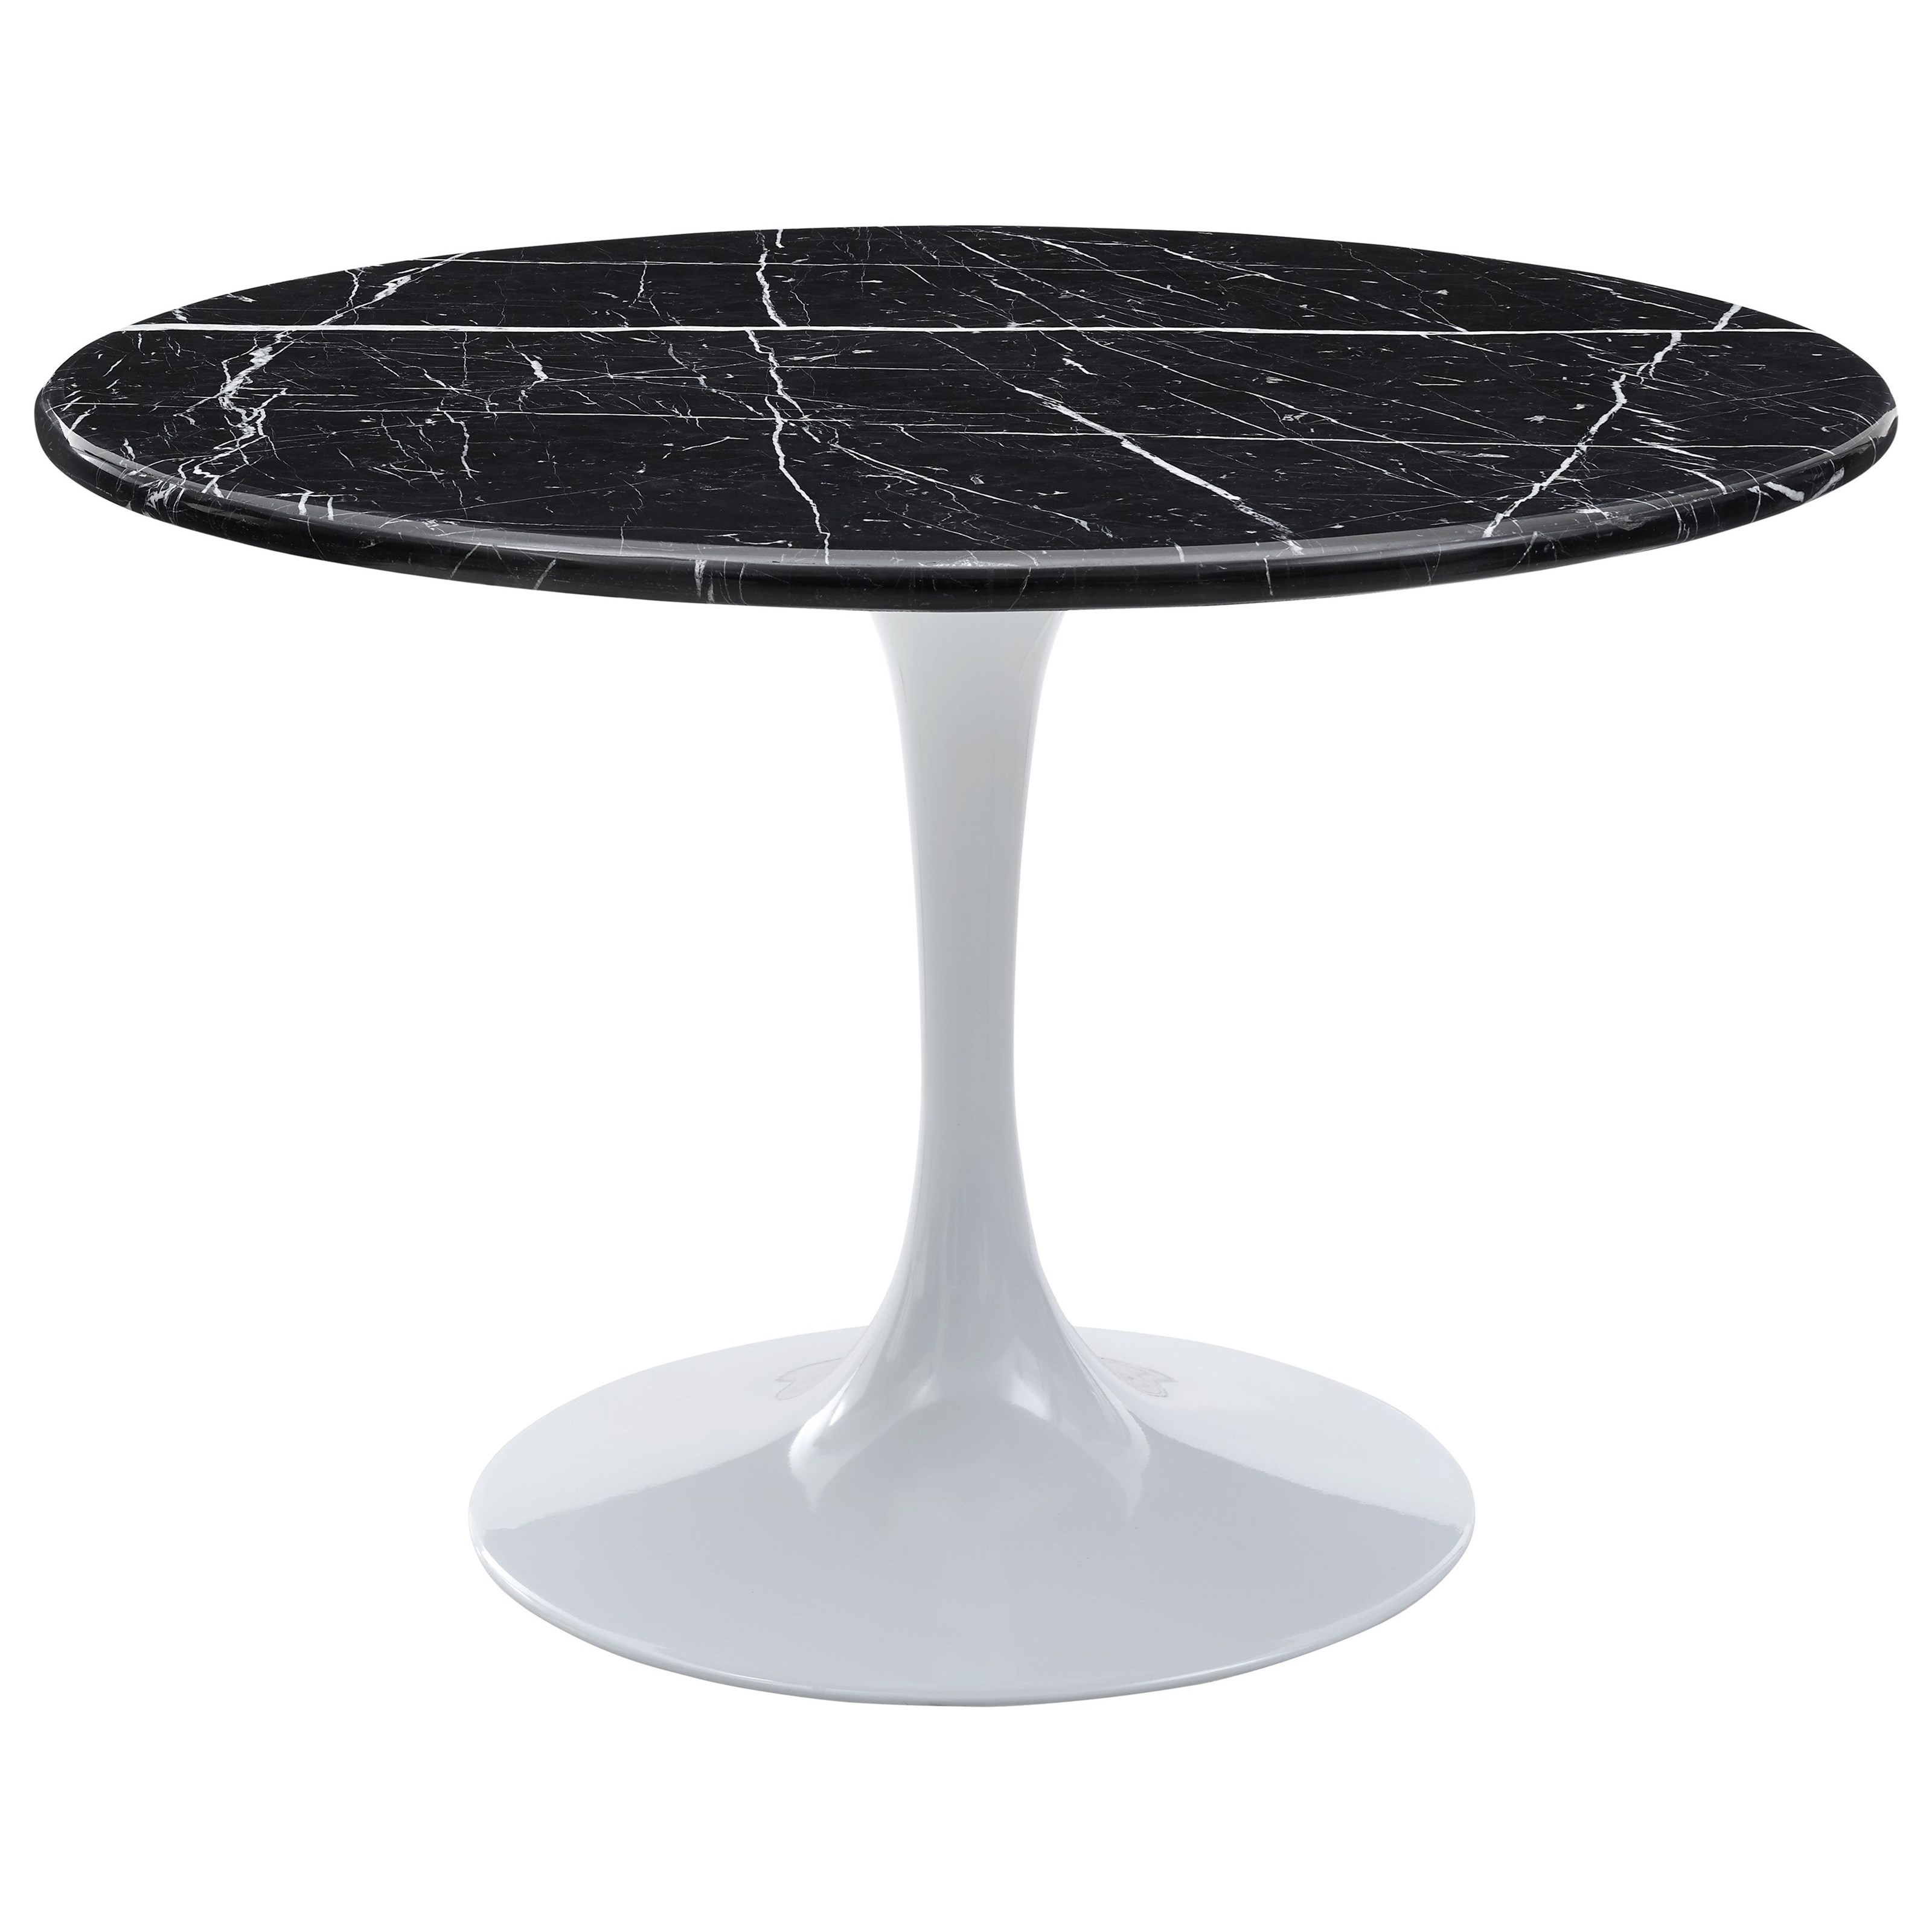 Colfax Table - Black Top & White Base by Steve Silver at Standard Furniture